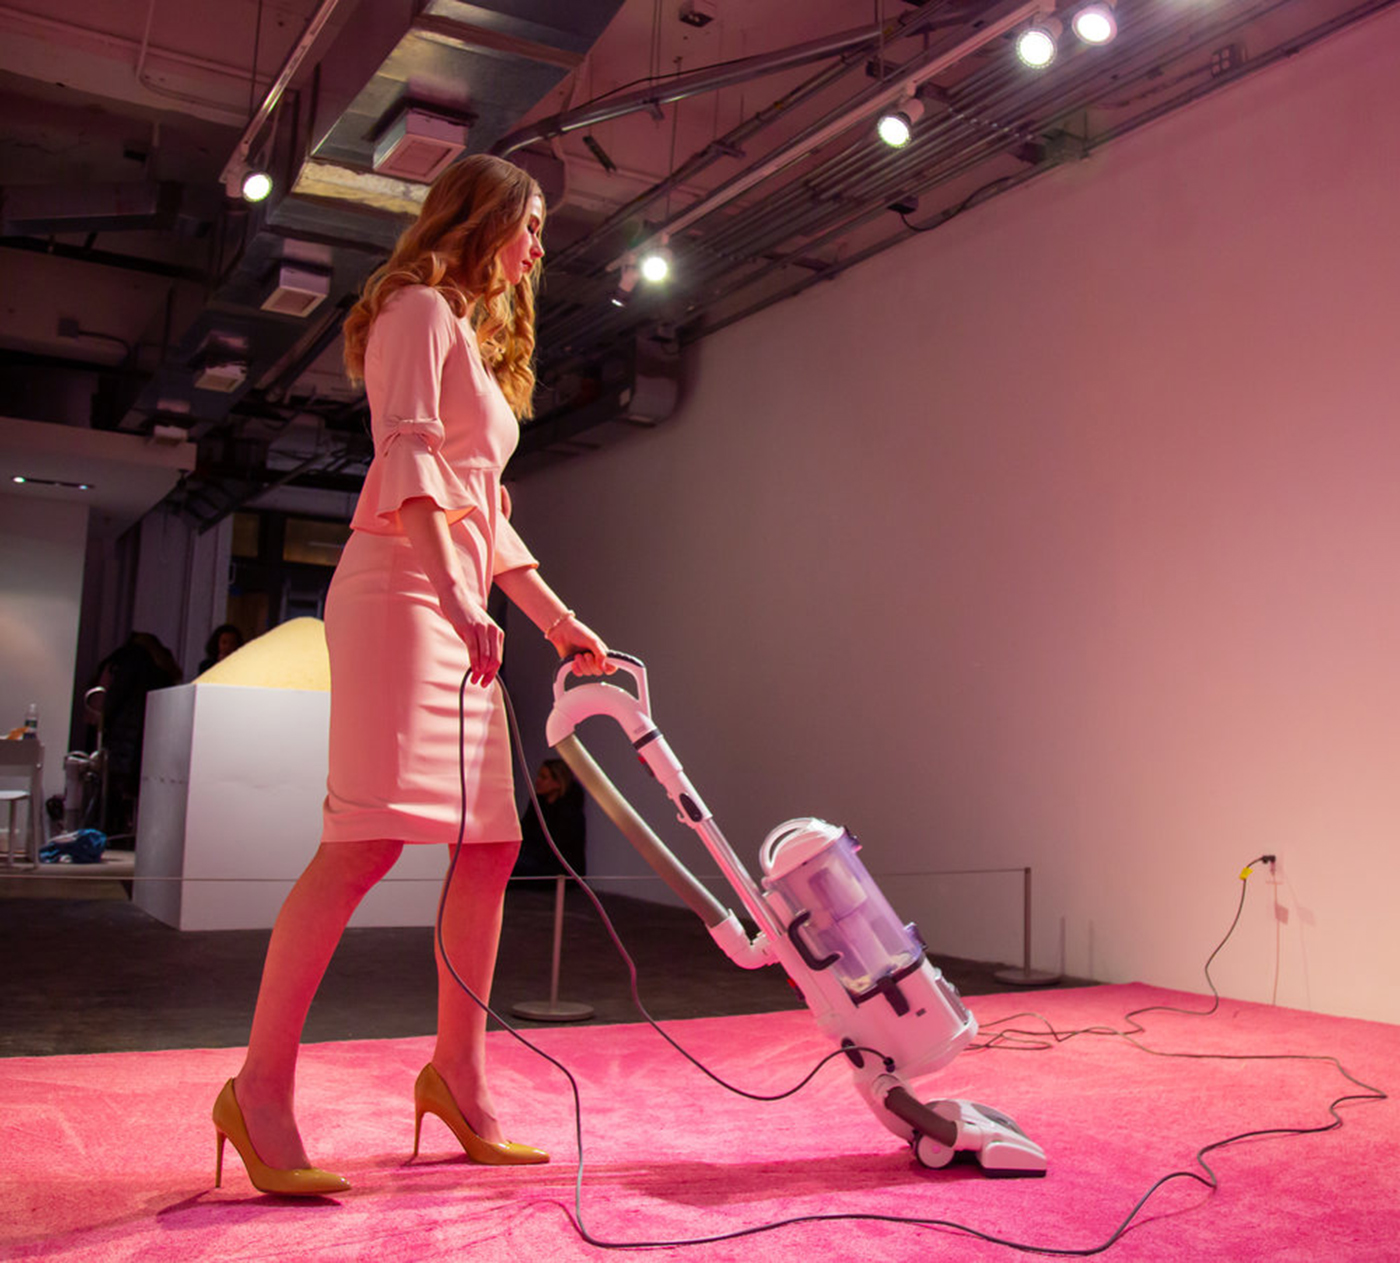 The Neoliberal Hypocrisies of Ivanka Trump Vacuuming - Hyperallergic, February 5, 2019